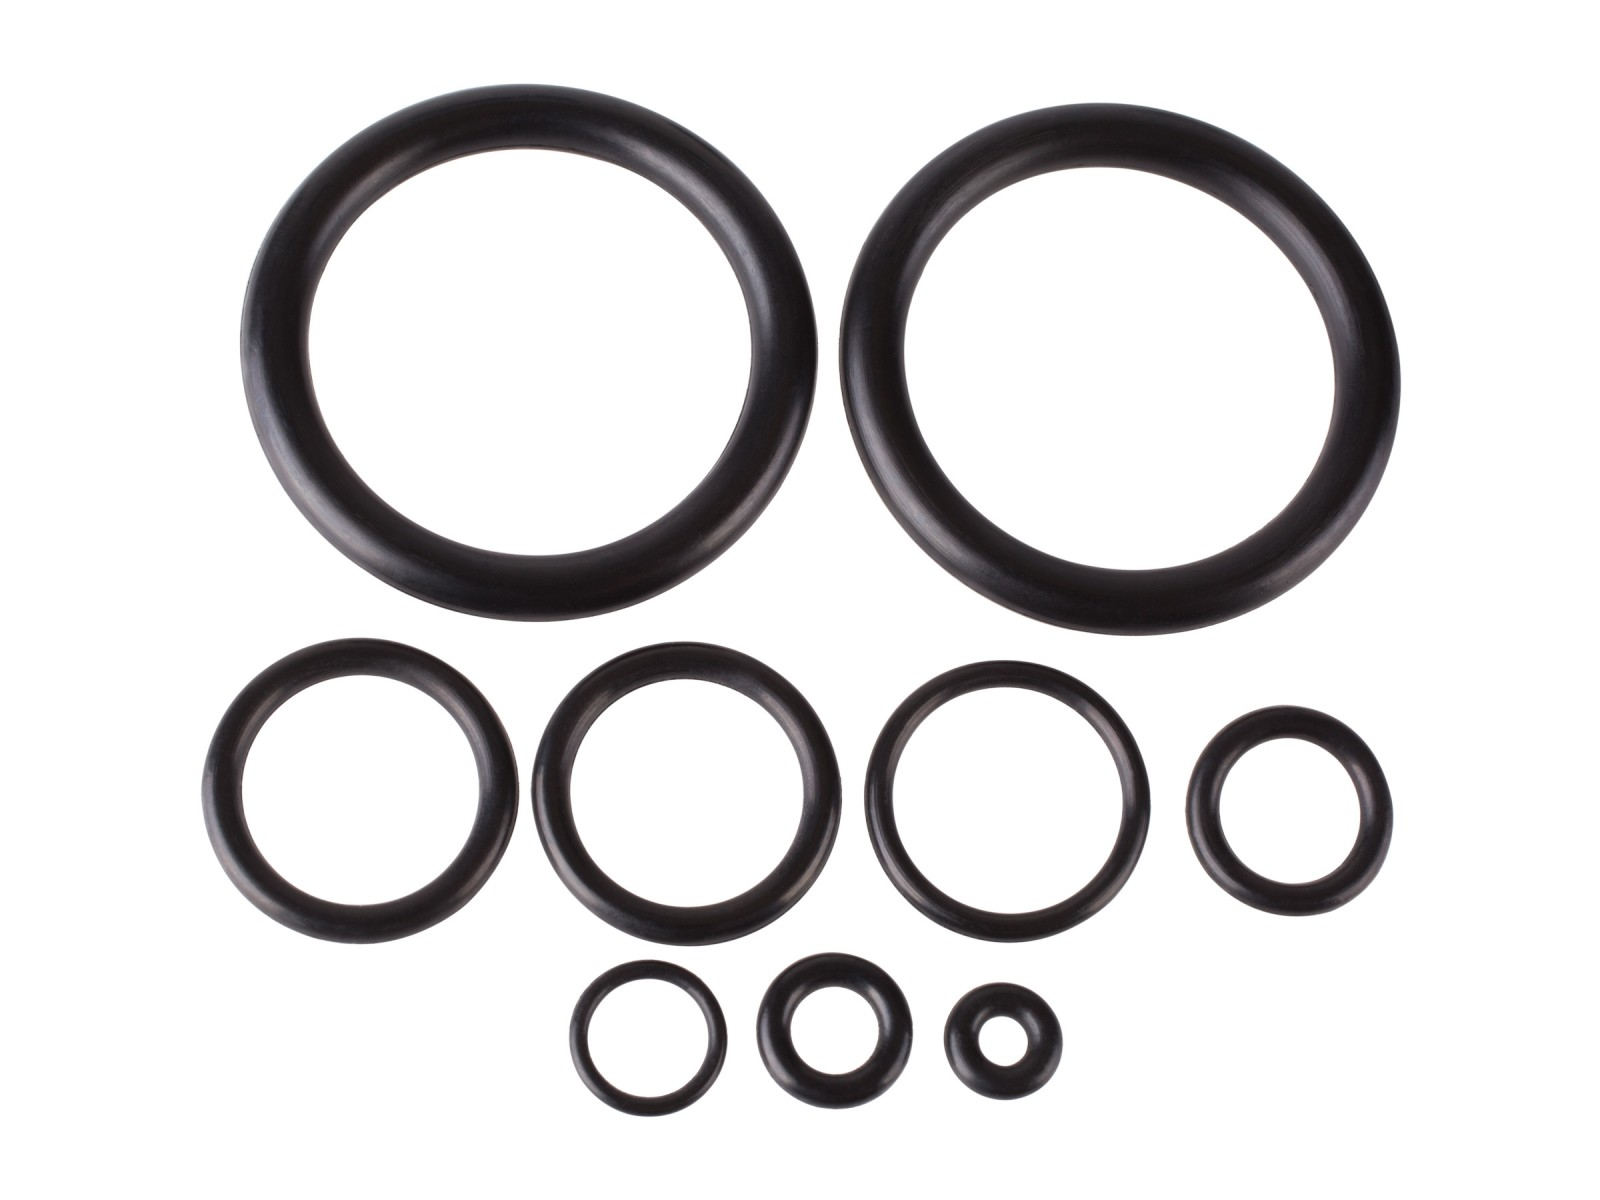 Image result for o ring seal